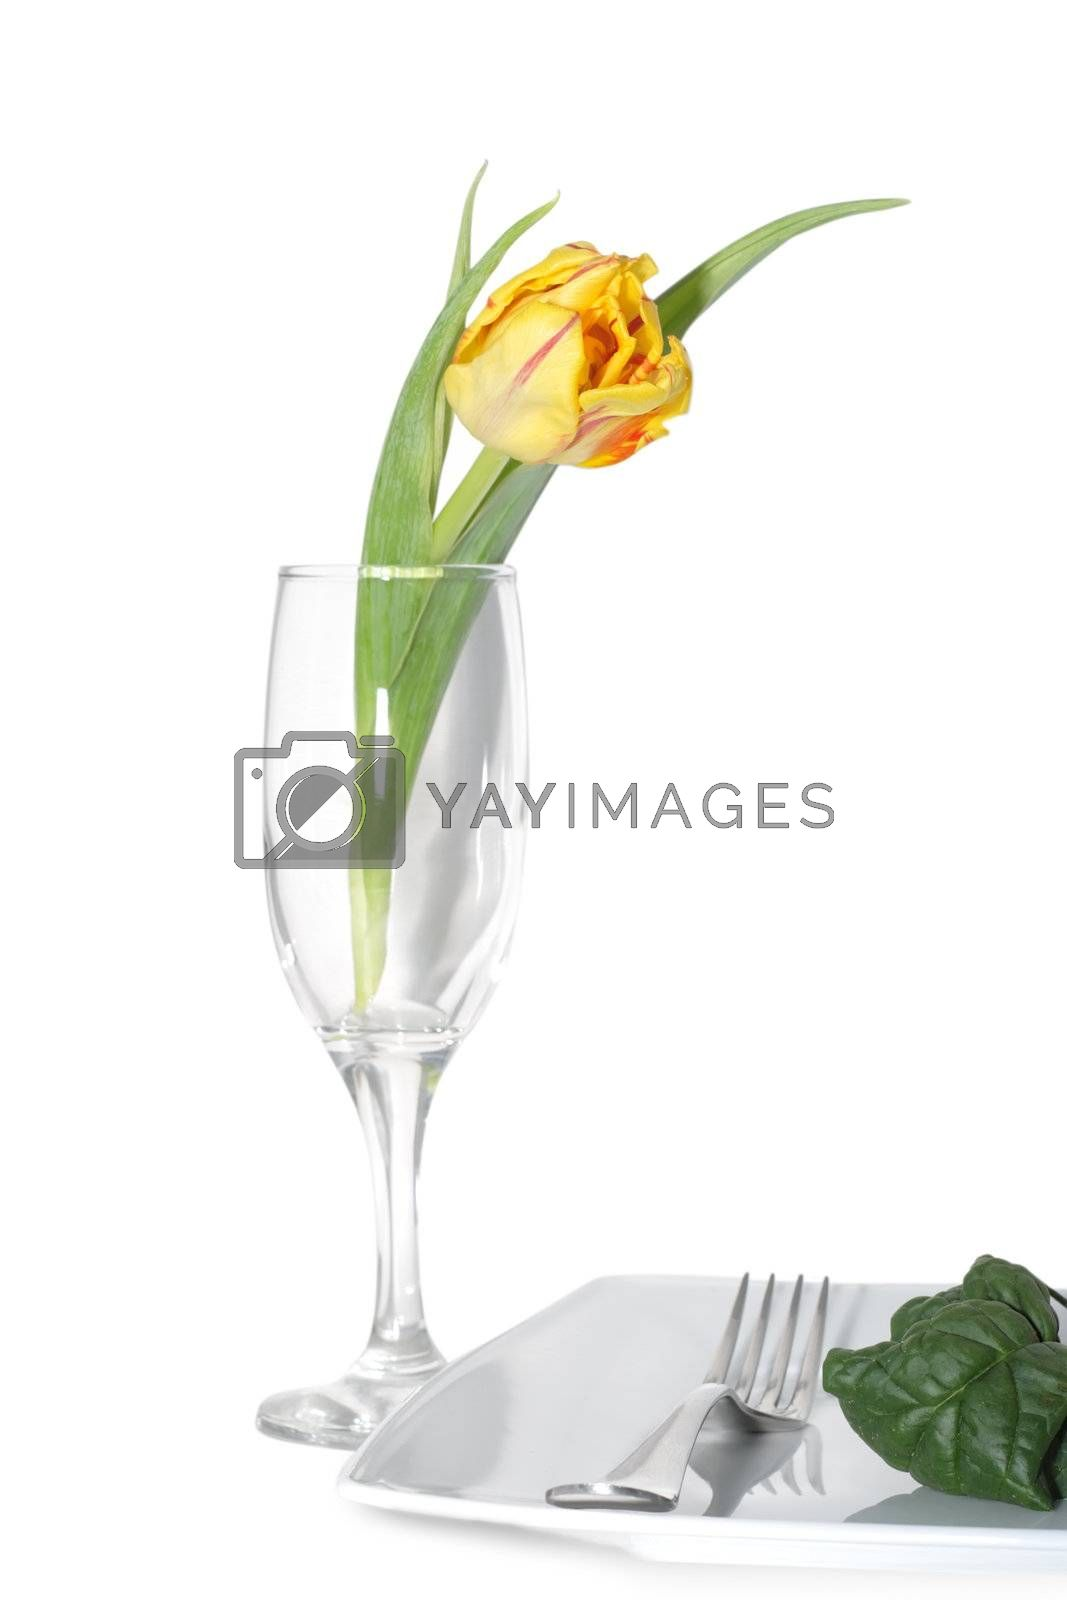 Still life of vegetables on a plete and flower in a glass.